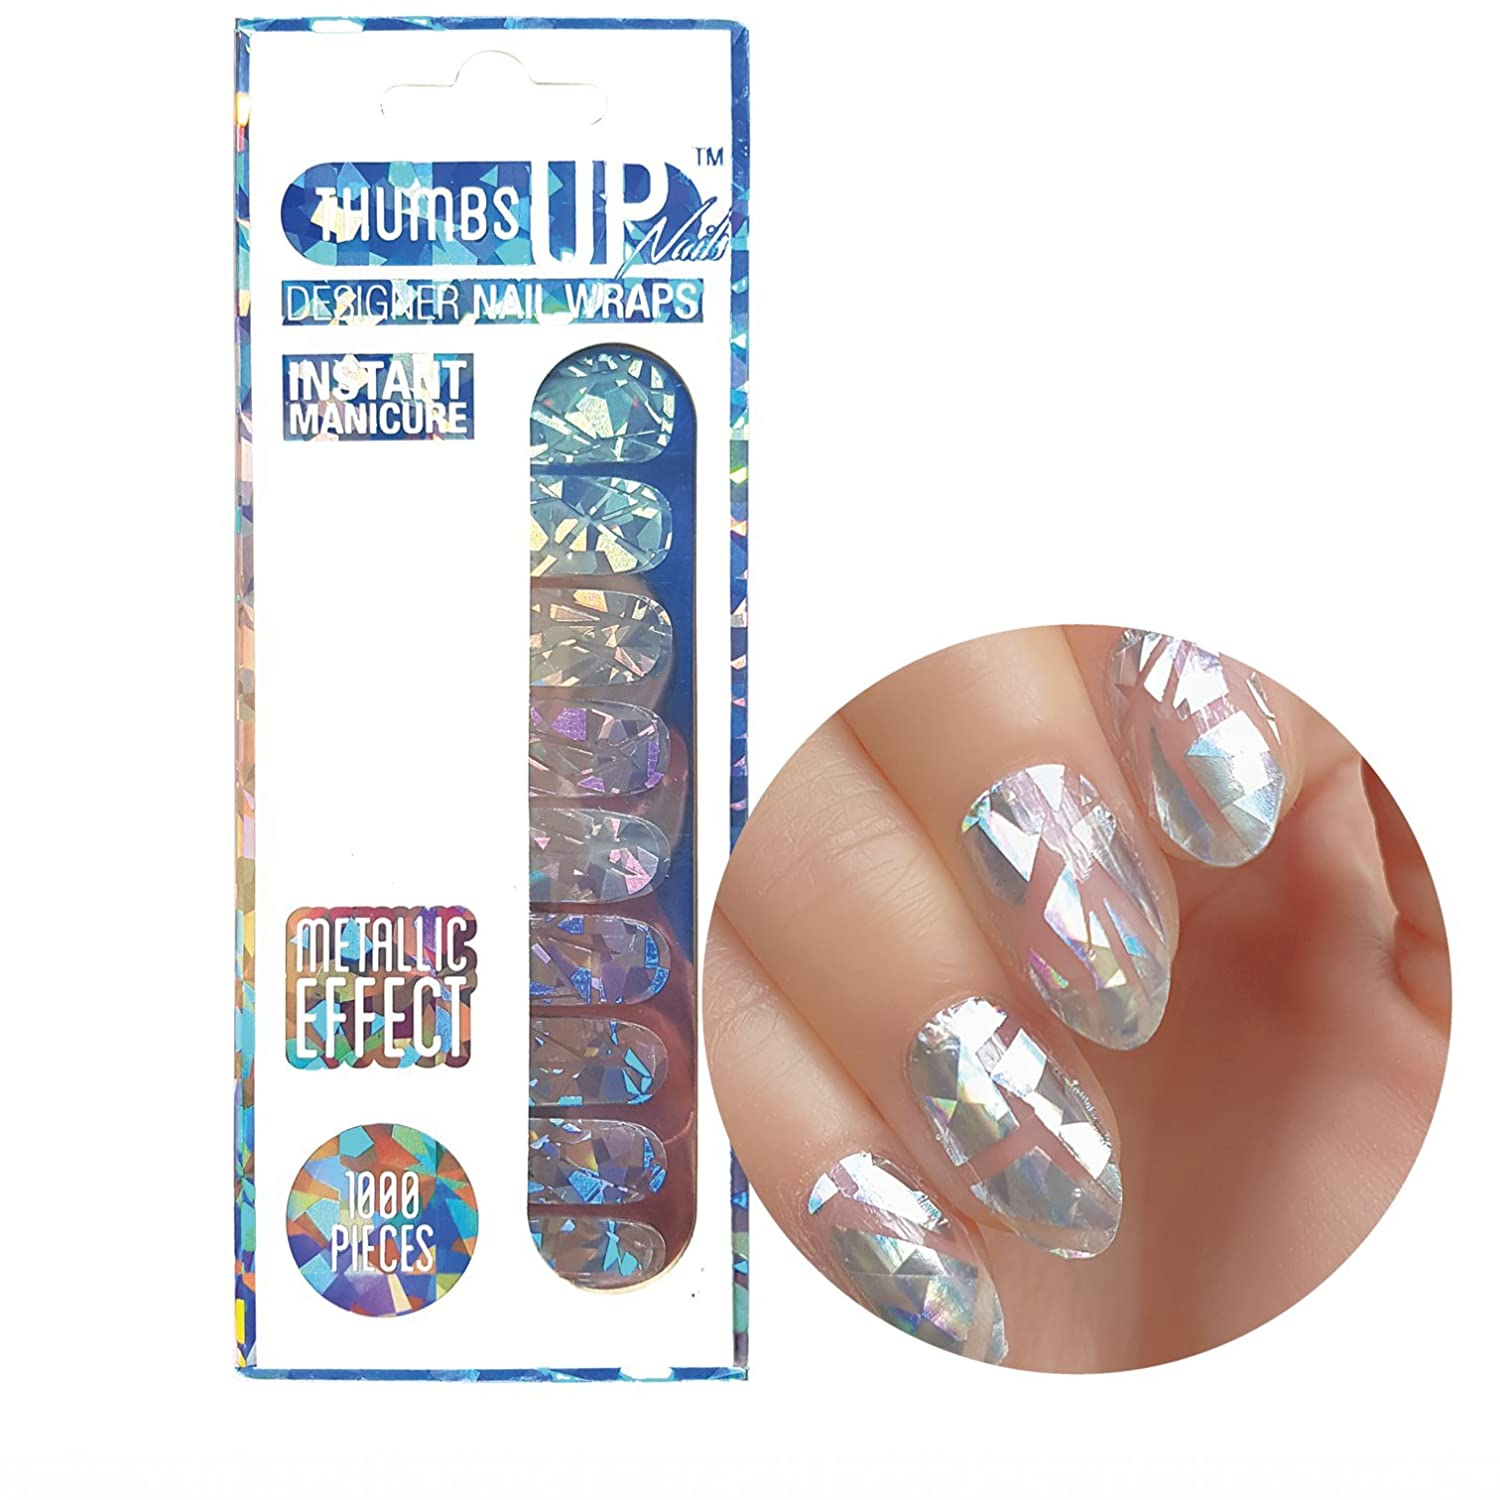 1000 Teile Shattered Glass Nail Wraps 20 Packungen/Pack von ThumbsUp Nägel ThumbsUp Nails